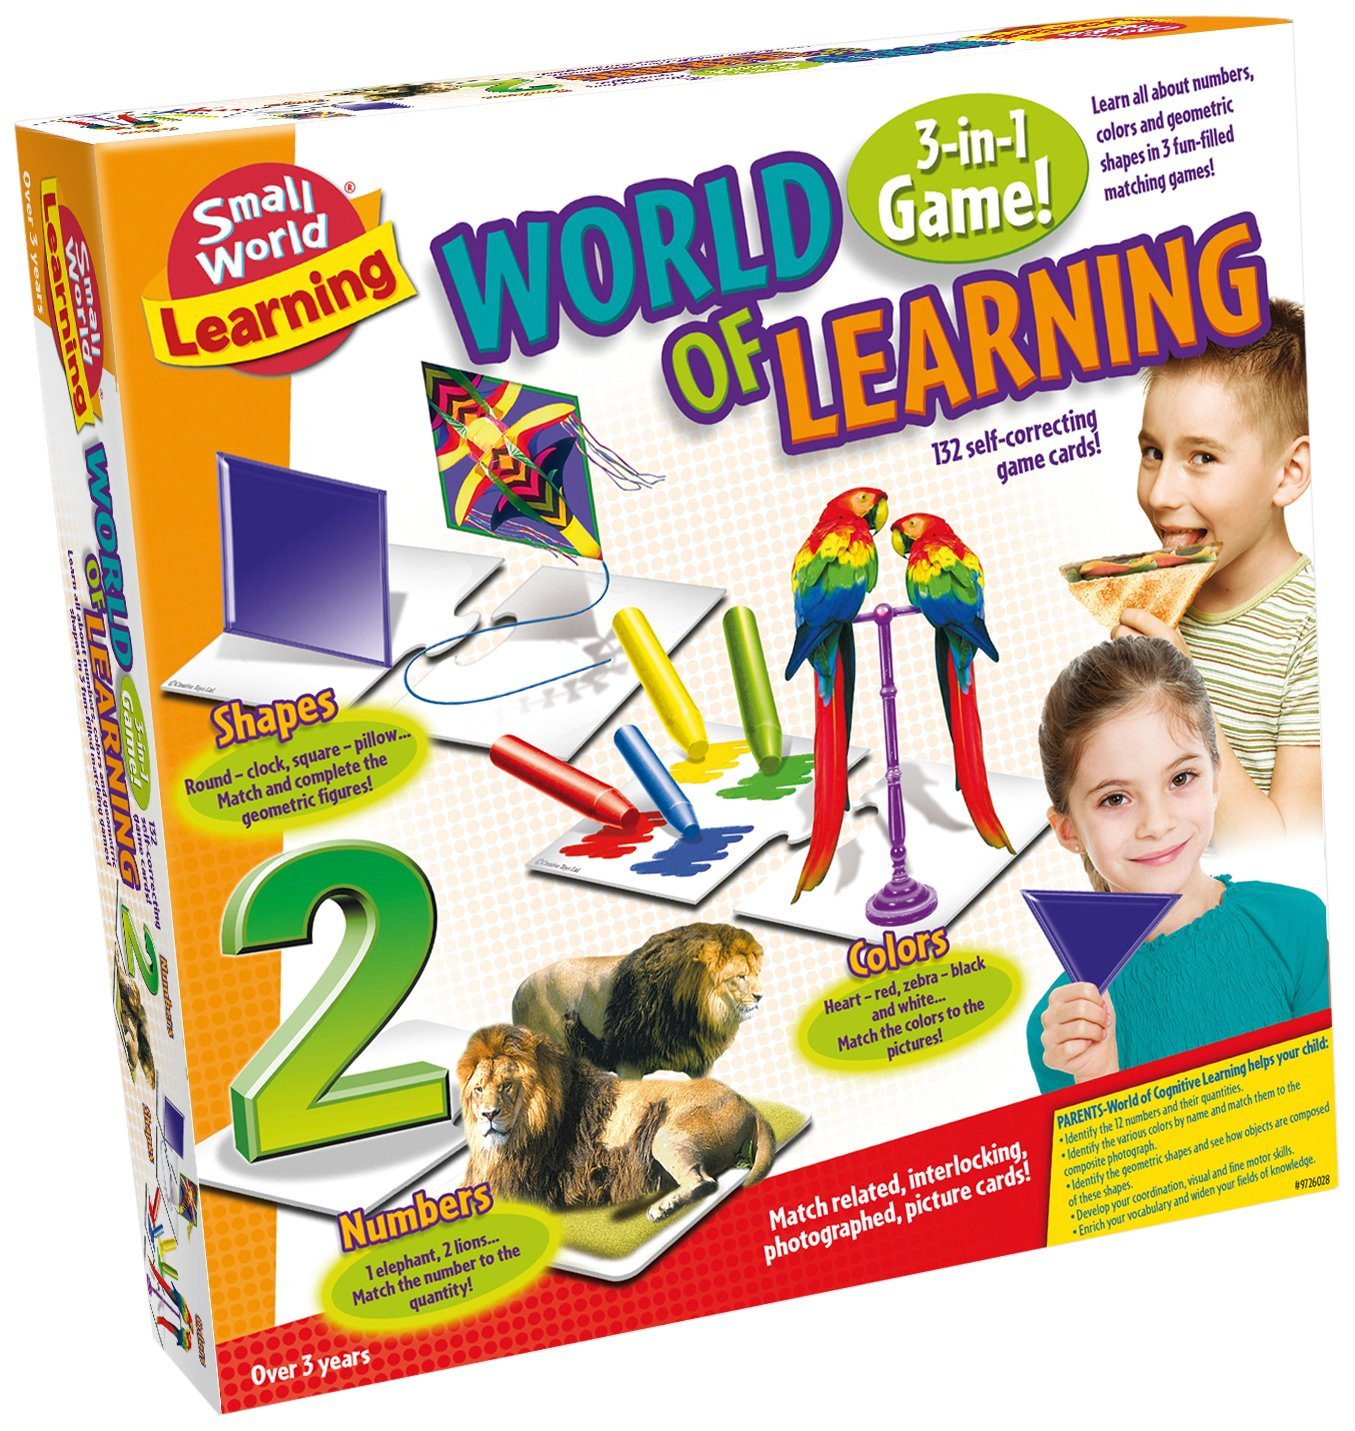 Learning World of Learning Card Game, 132 self-correcting game cards! By Small World Toys by